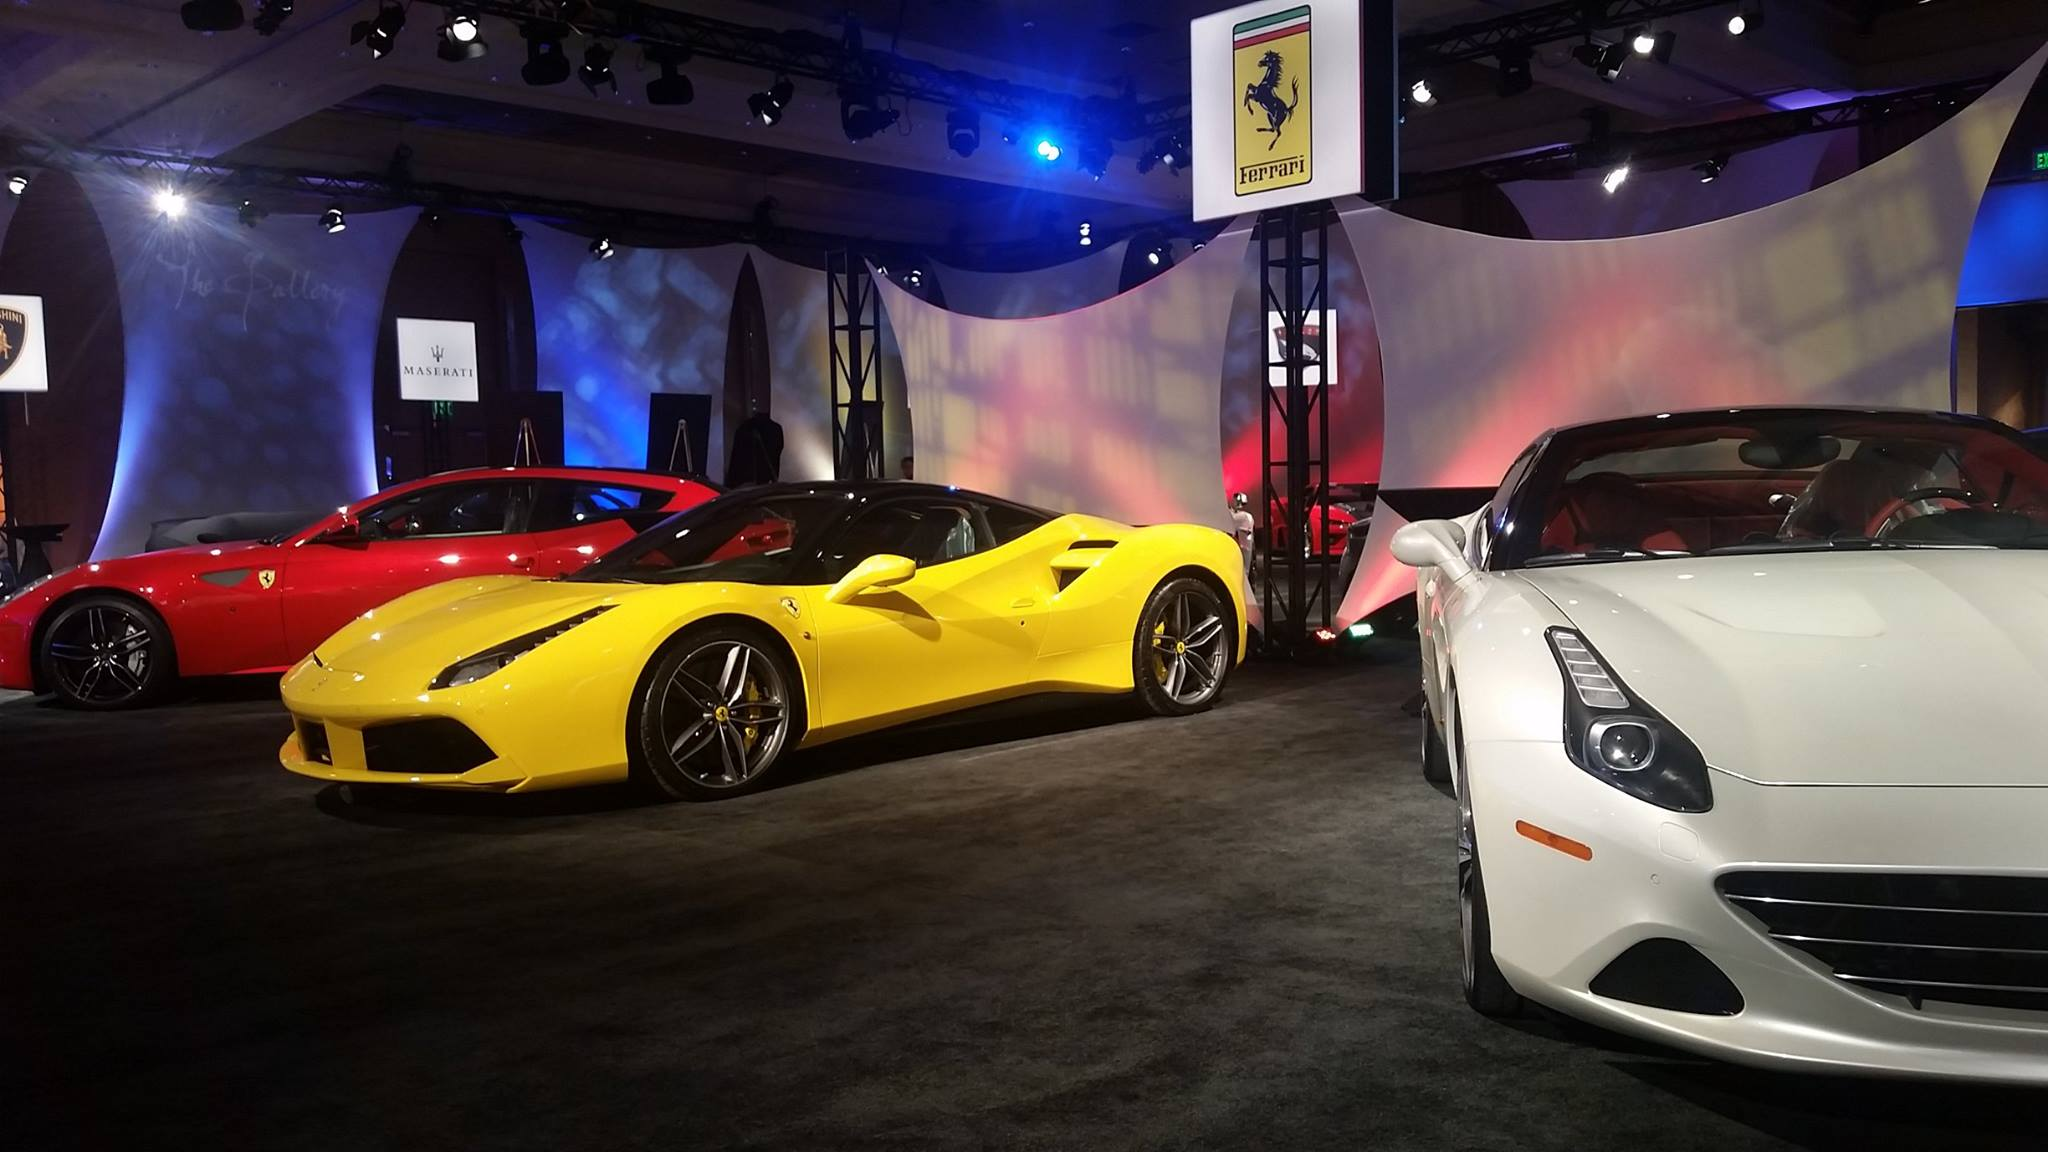 Ferrari - red FF - yellow 488 GTB - white Califonia T - The Gallery - event - NAIAS 2016